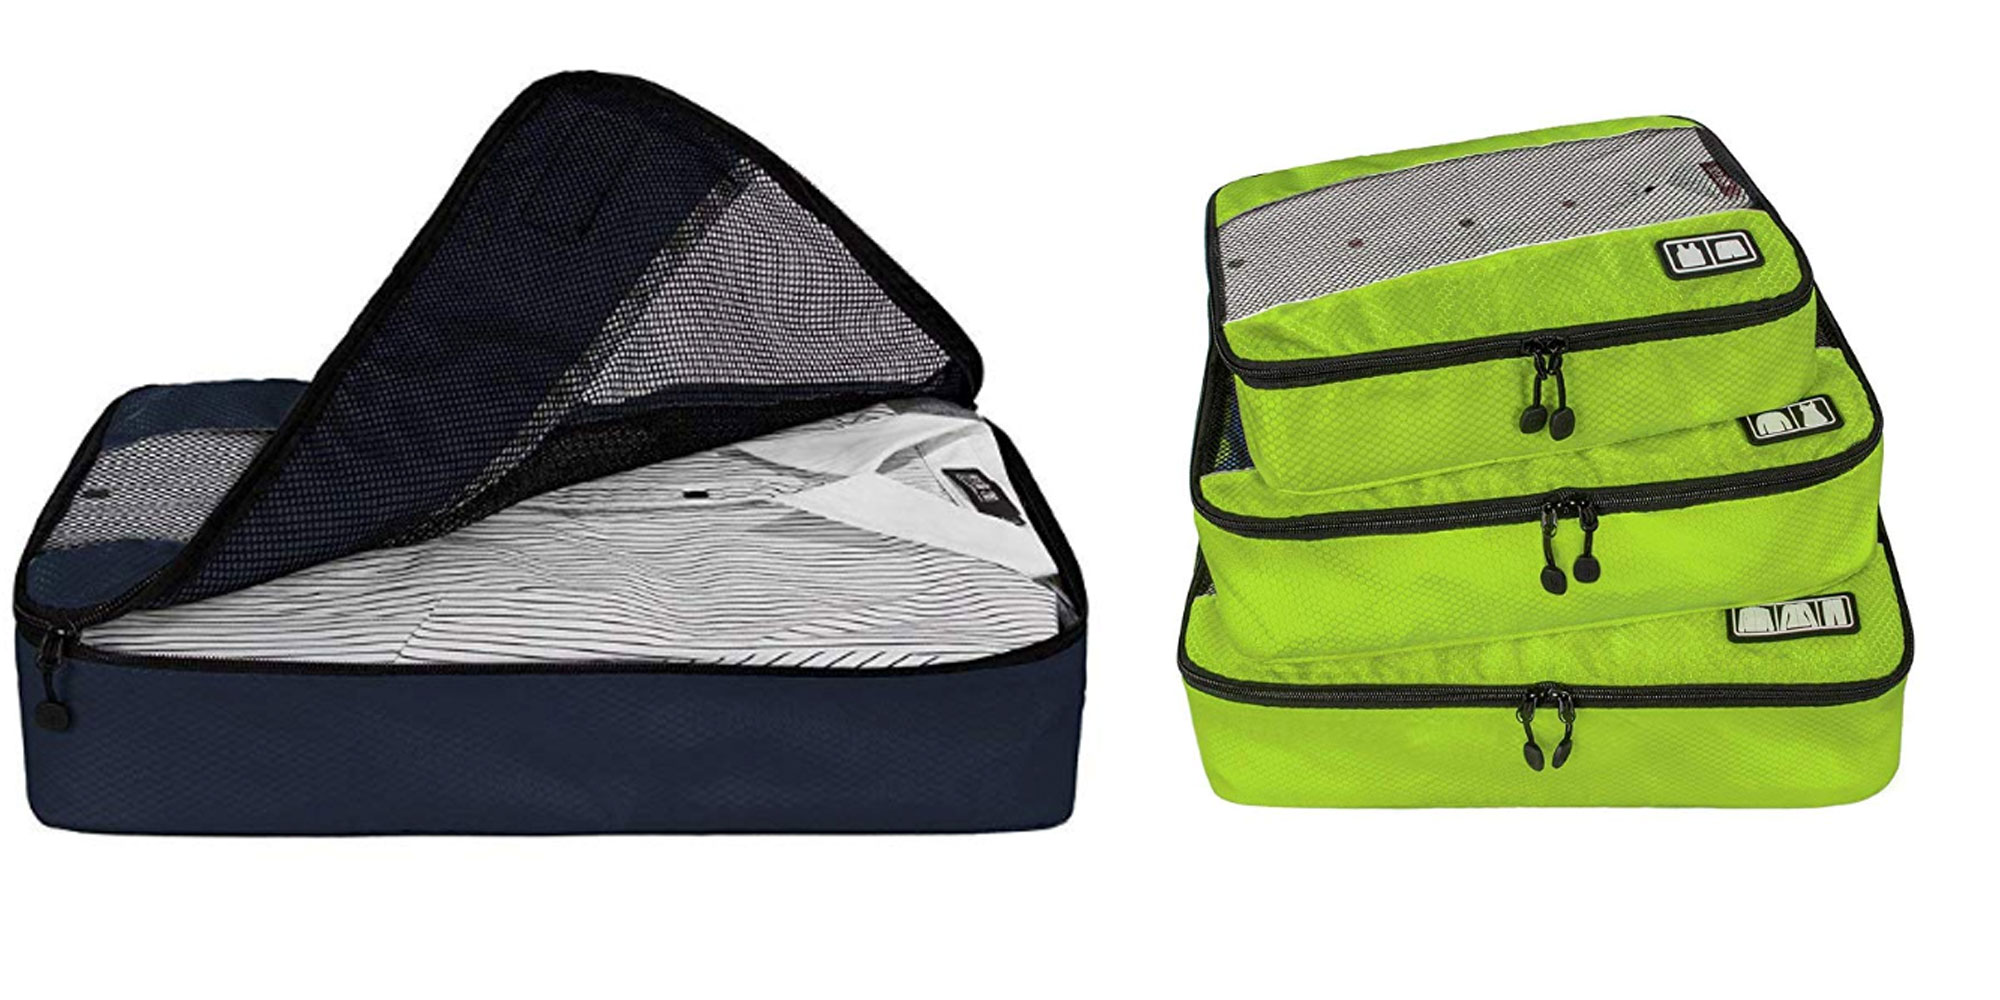 This 3-pack of BAGSMART travel packing cubes is a must-have for summer trips: $13.50 (Reg. $30)